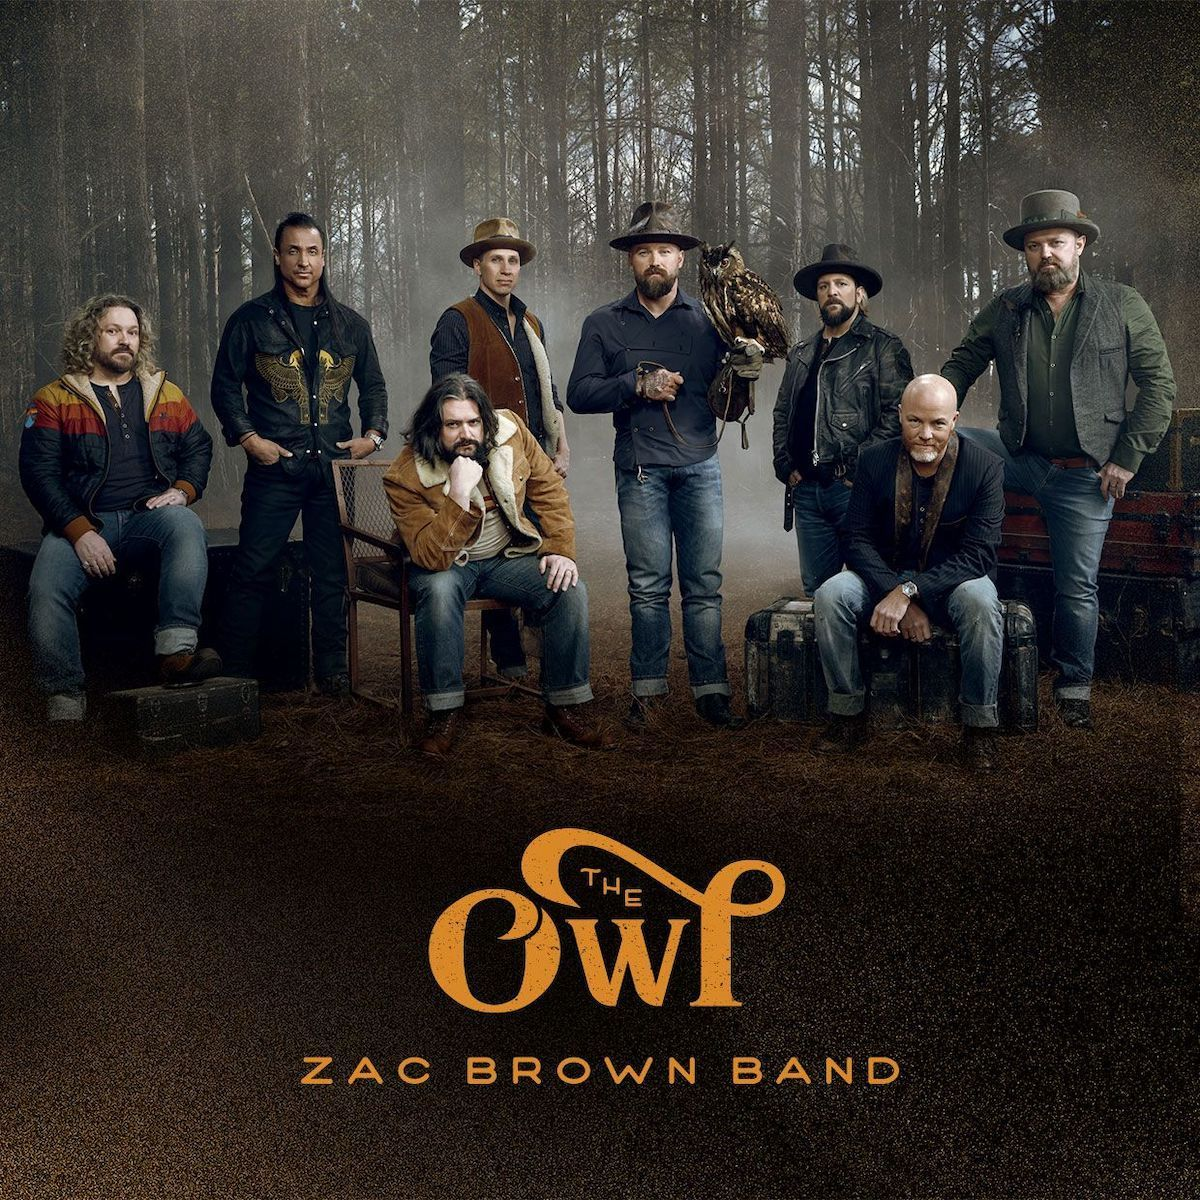 Album Review Zac Brown Band S The Owl Achieves Country Pop Fusion Stays True To Roots Daily Bruin